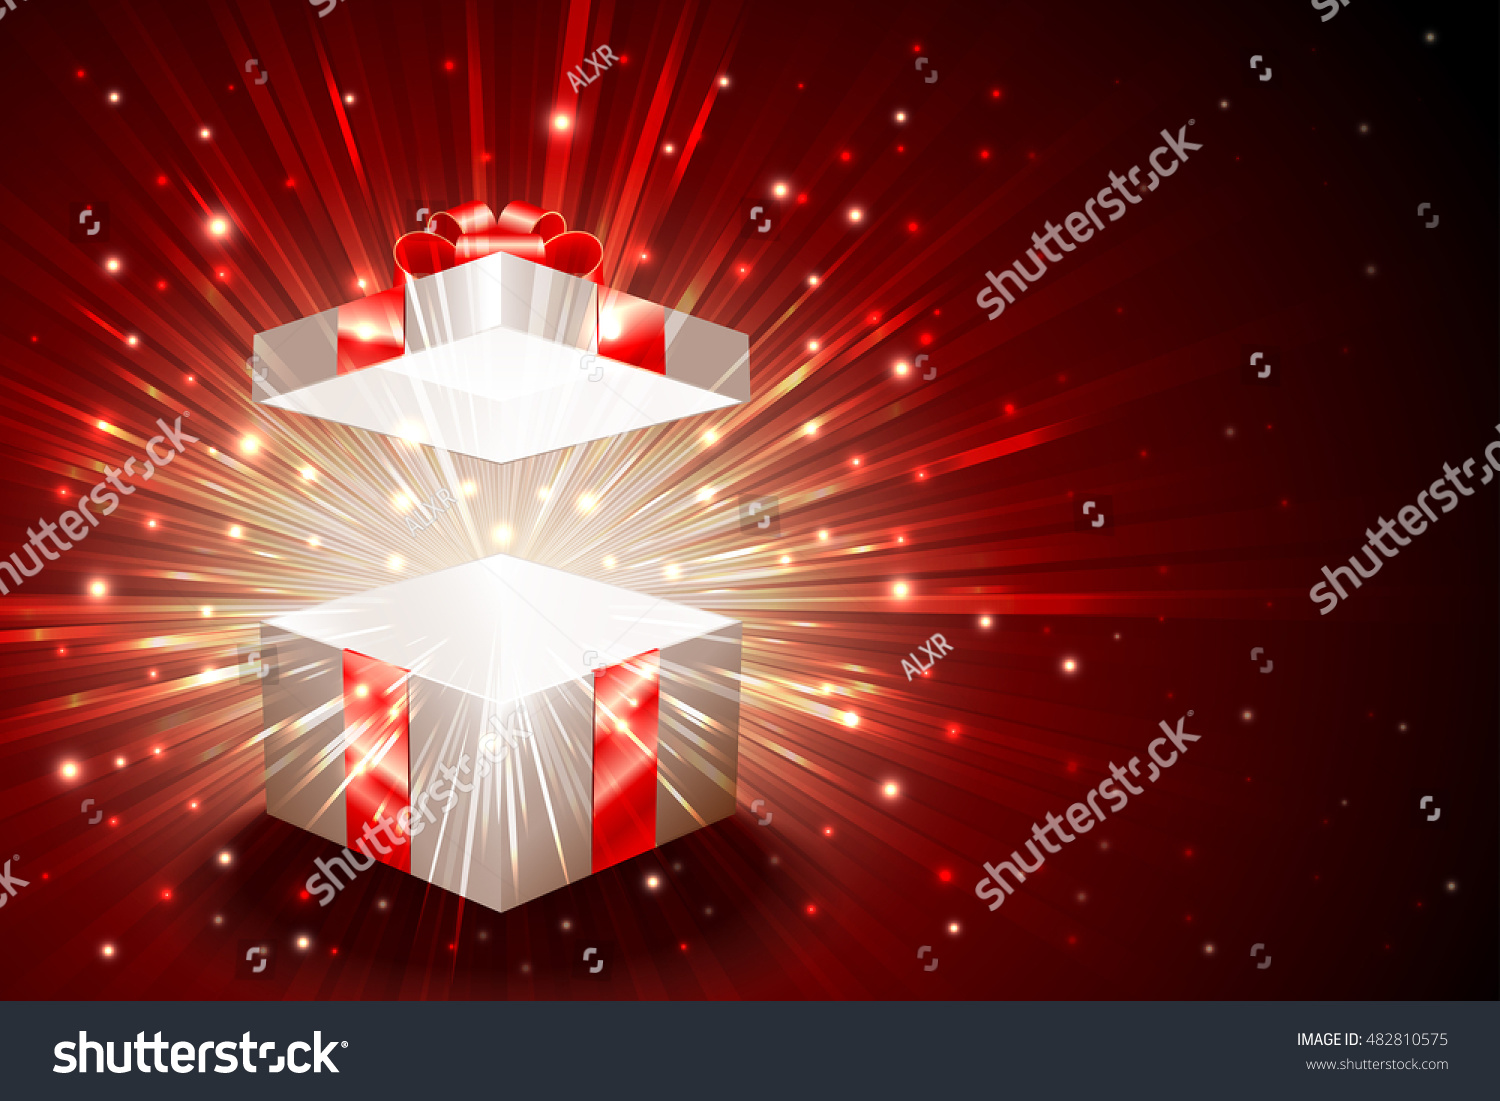 Open Gift Box With Shining Exploding Firework From Glitter For Theme Of Christmas New Year